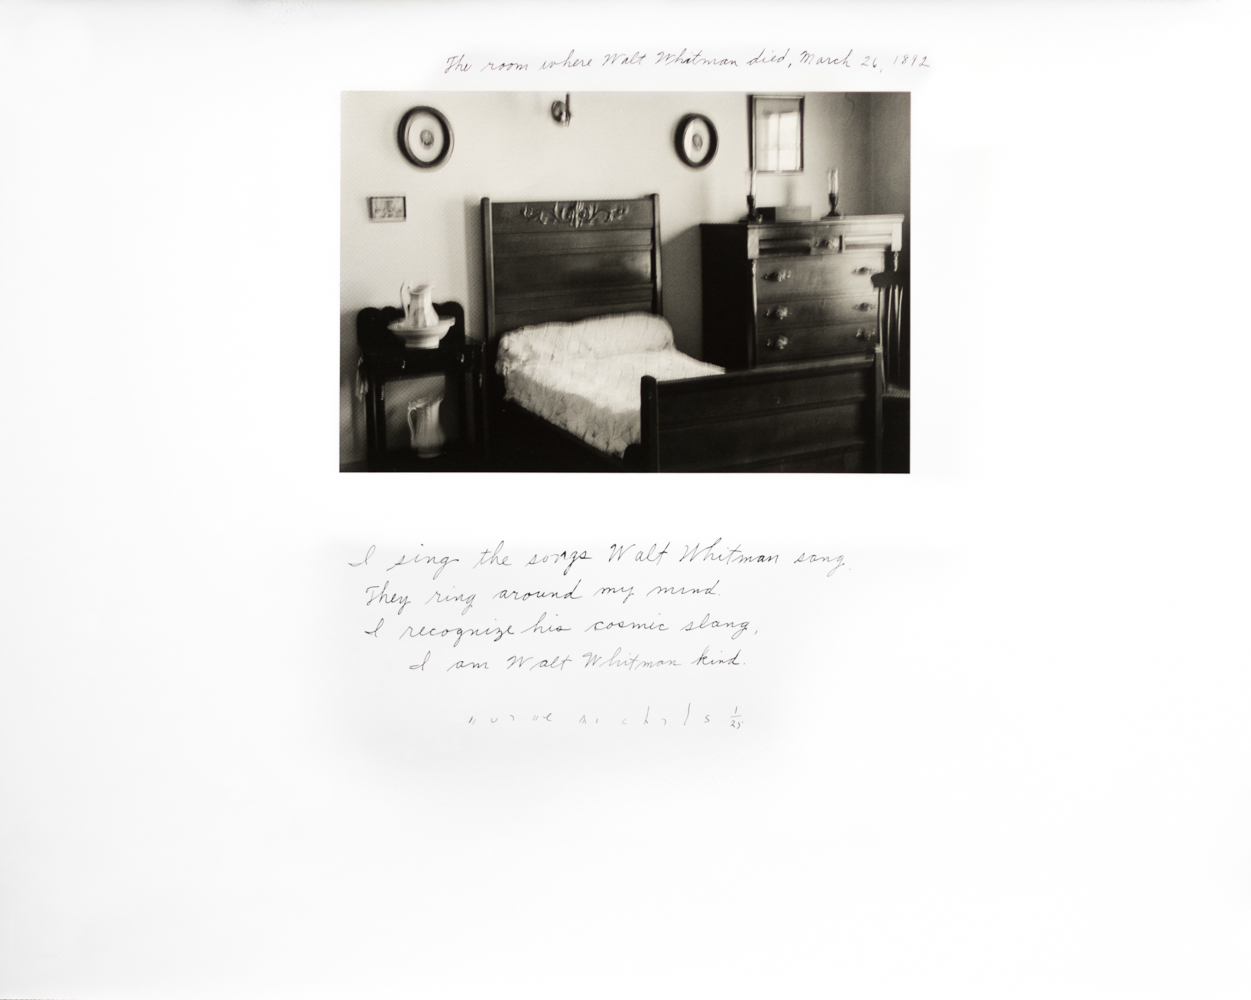 DUANE MICHALS,  The Room Where Walt Whitman Died , 1995